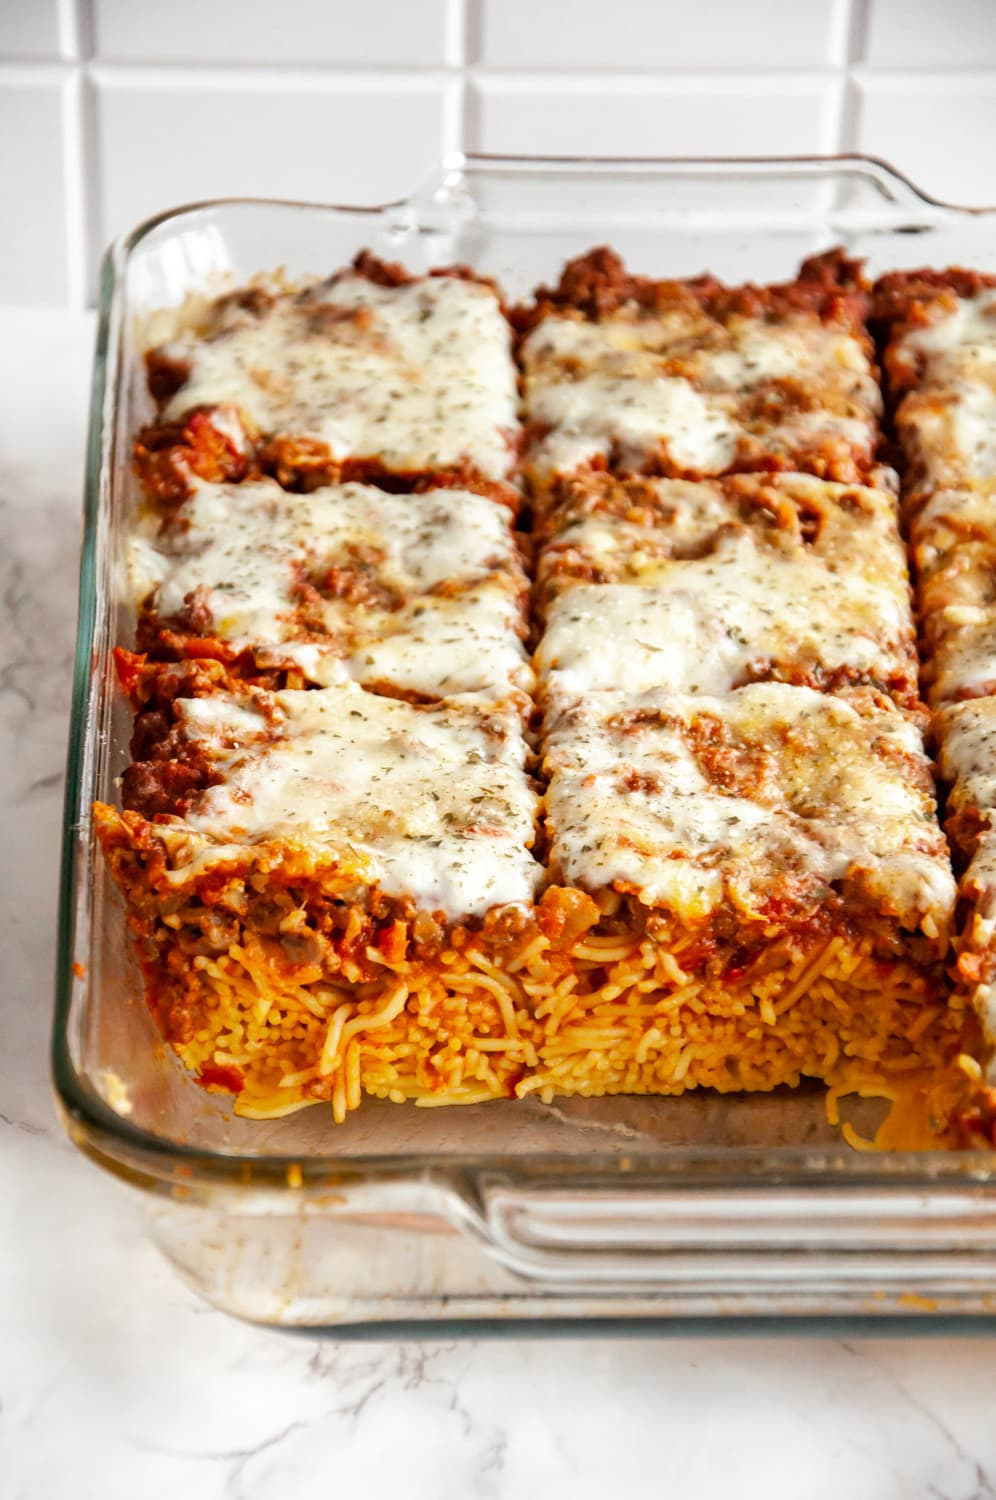 baked spaghetti sliced in a baking dish